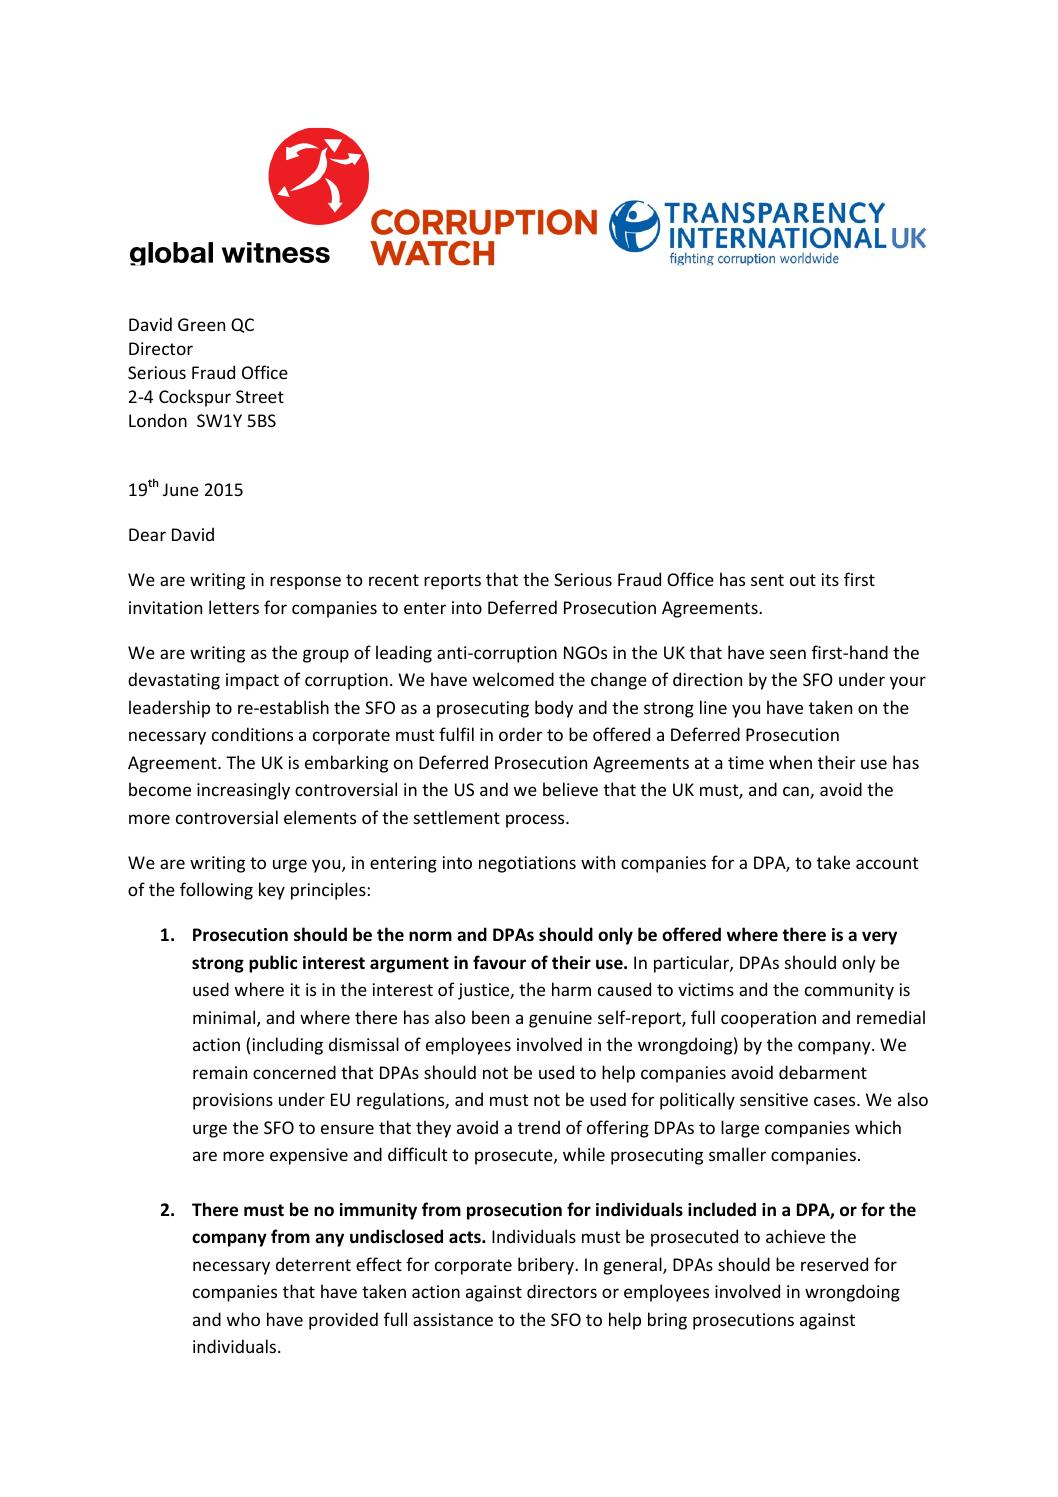 Letter To David Green Qc 19 June 2015 By Transparency International